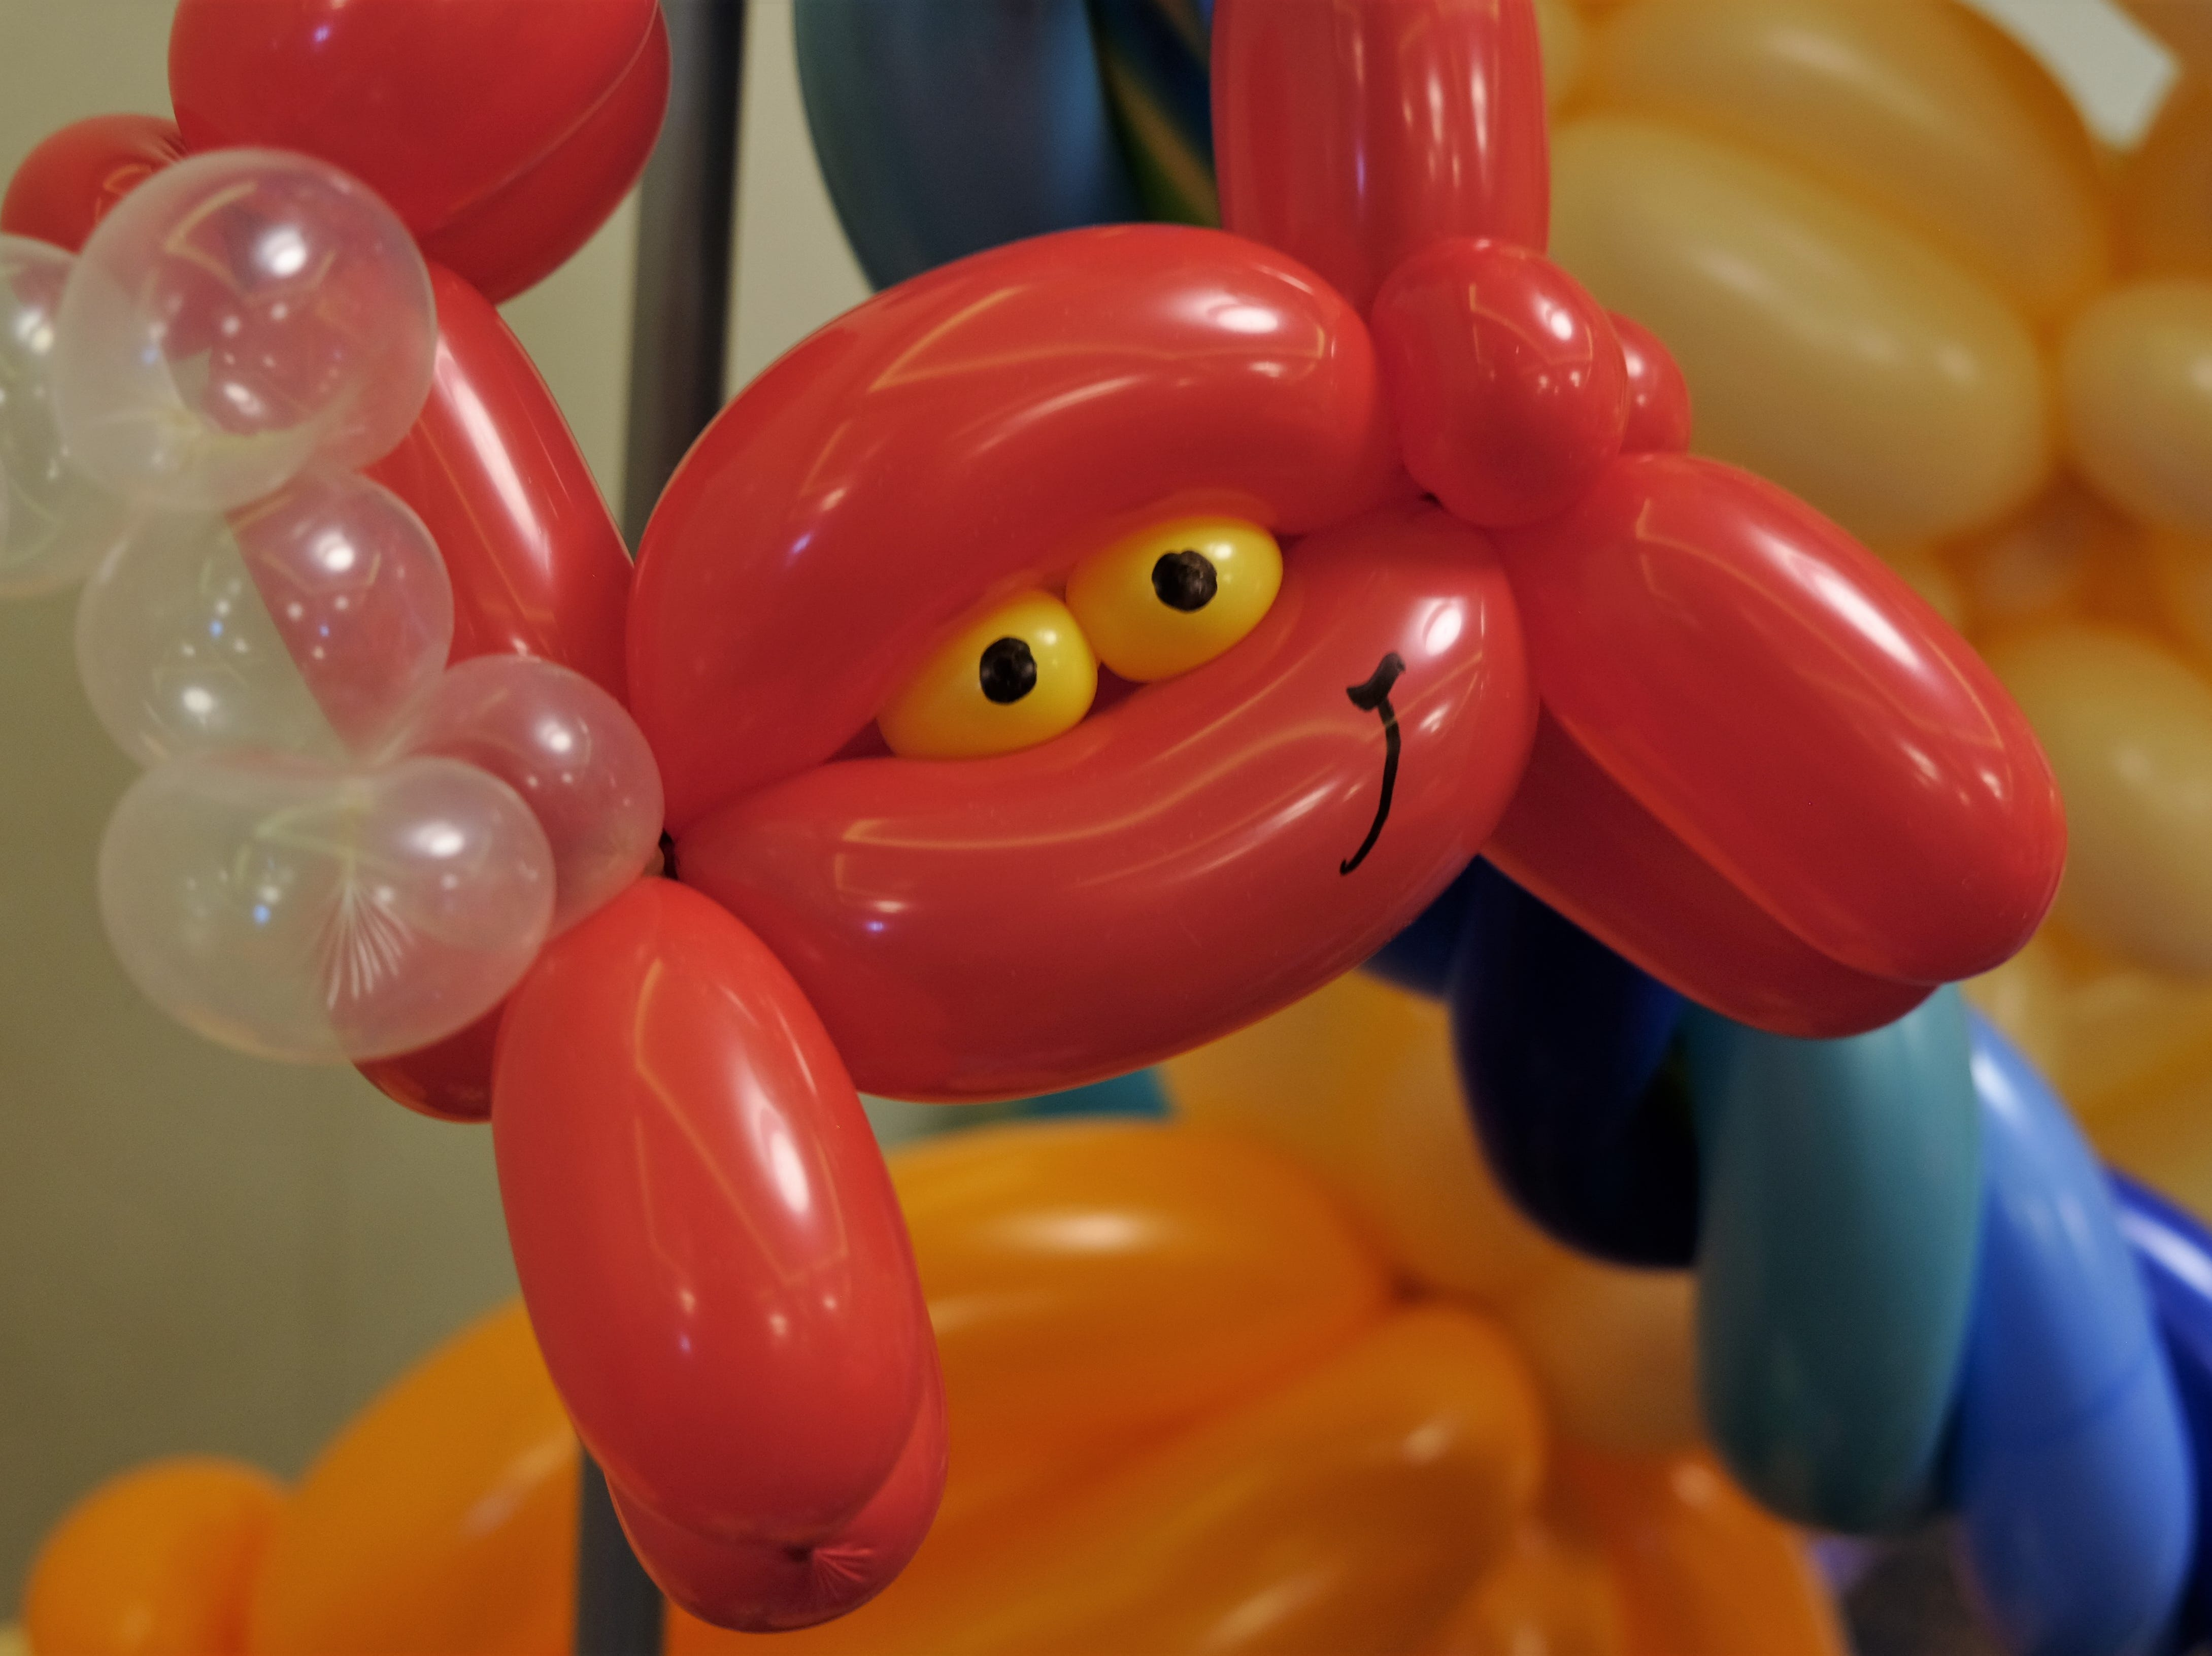 Not all crabs can be eaten. This rubbery crustacean is part of a balloon display crafted by Renate McIntosh.